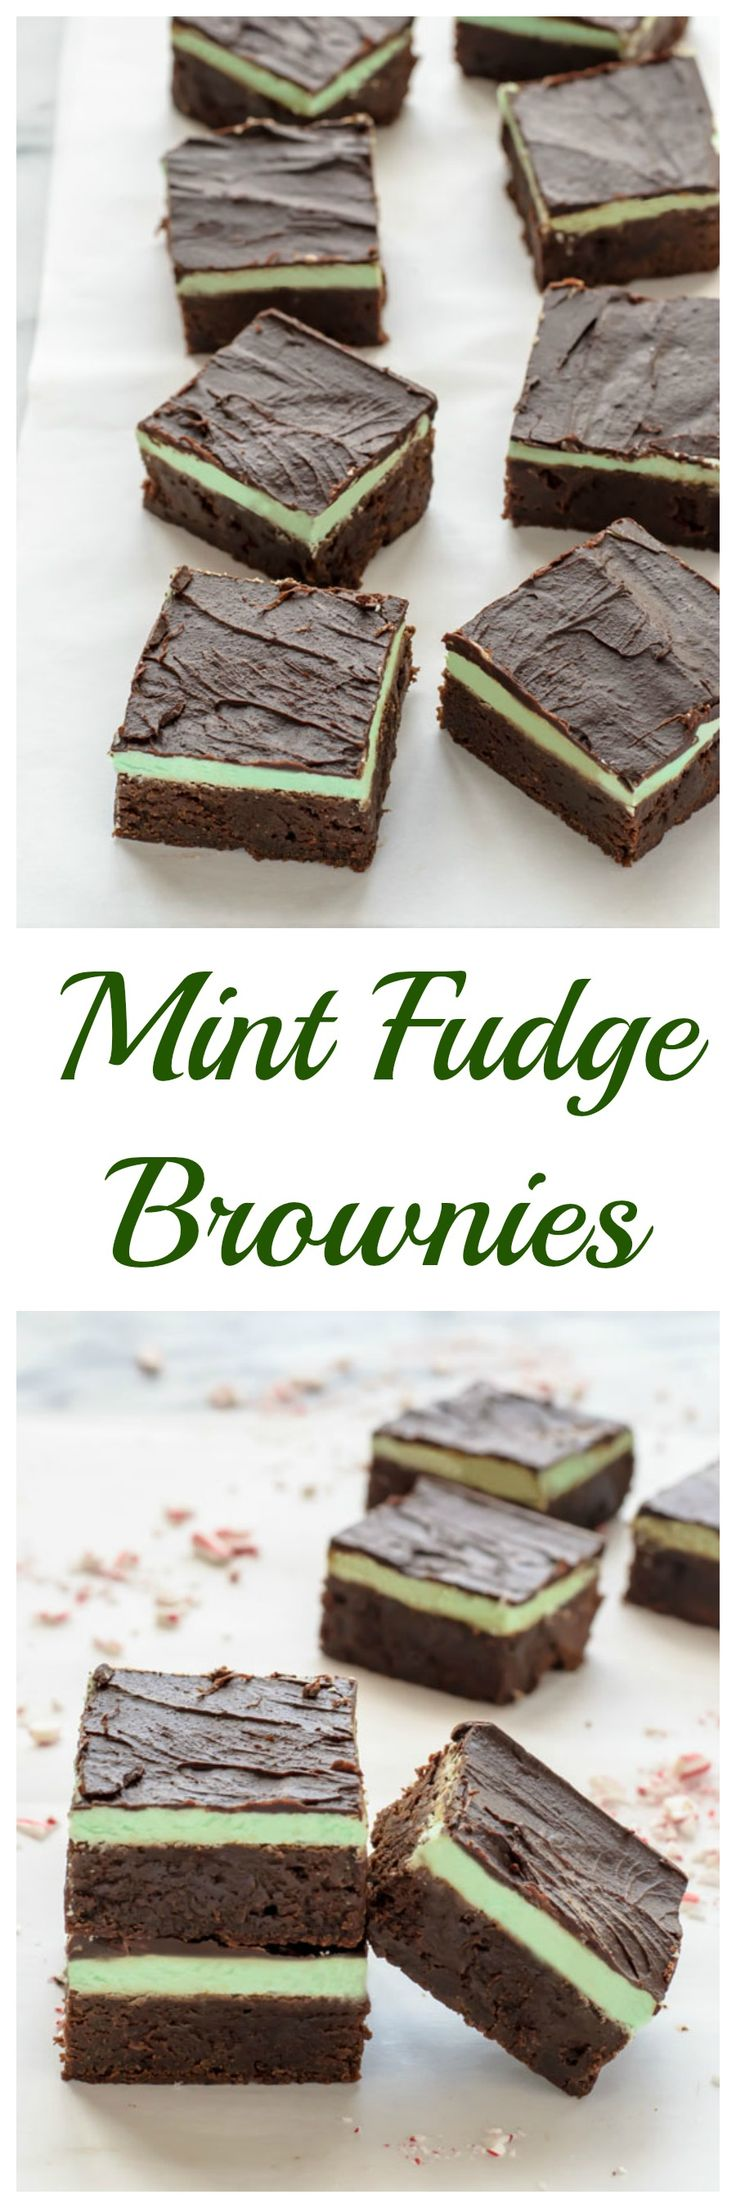 The BEST Mint Fudge Brownies. Rich and fudgy with a creamy peppermint layer that tastes just like an Andes mint. A must bake holiday recipe!